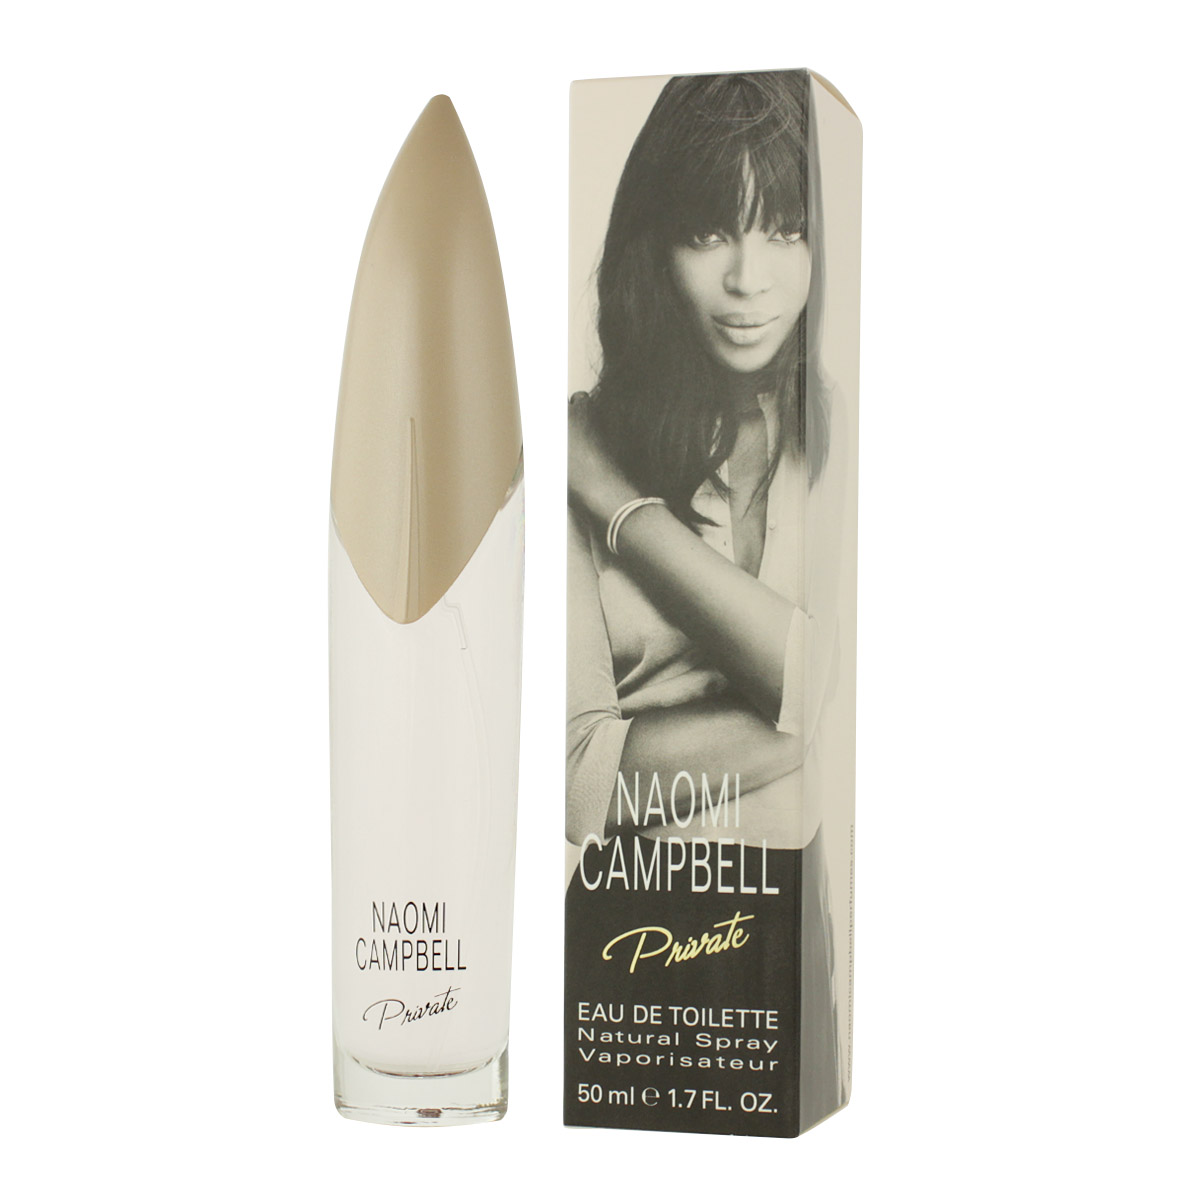 Naomi Campbell Private EDT 50 ml W